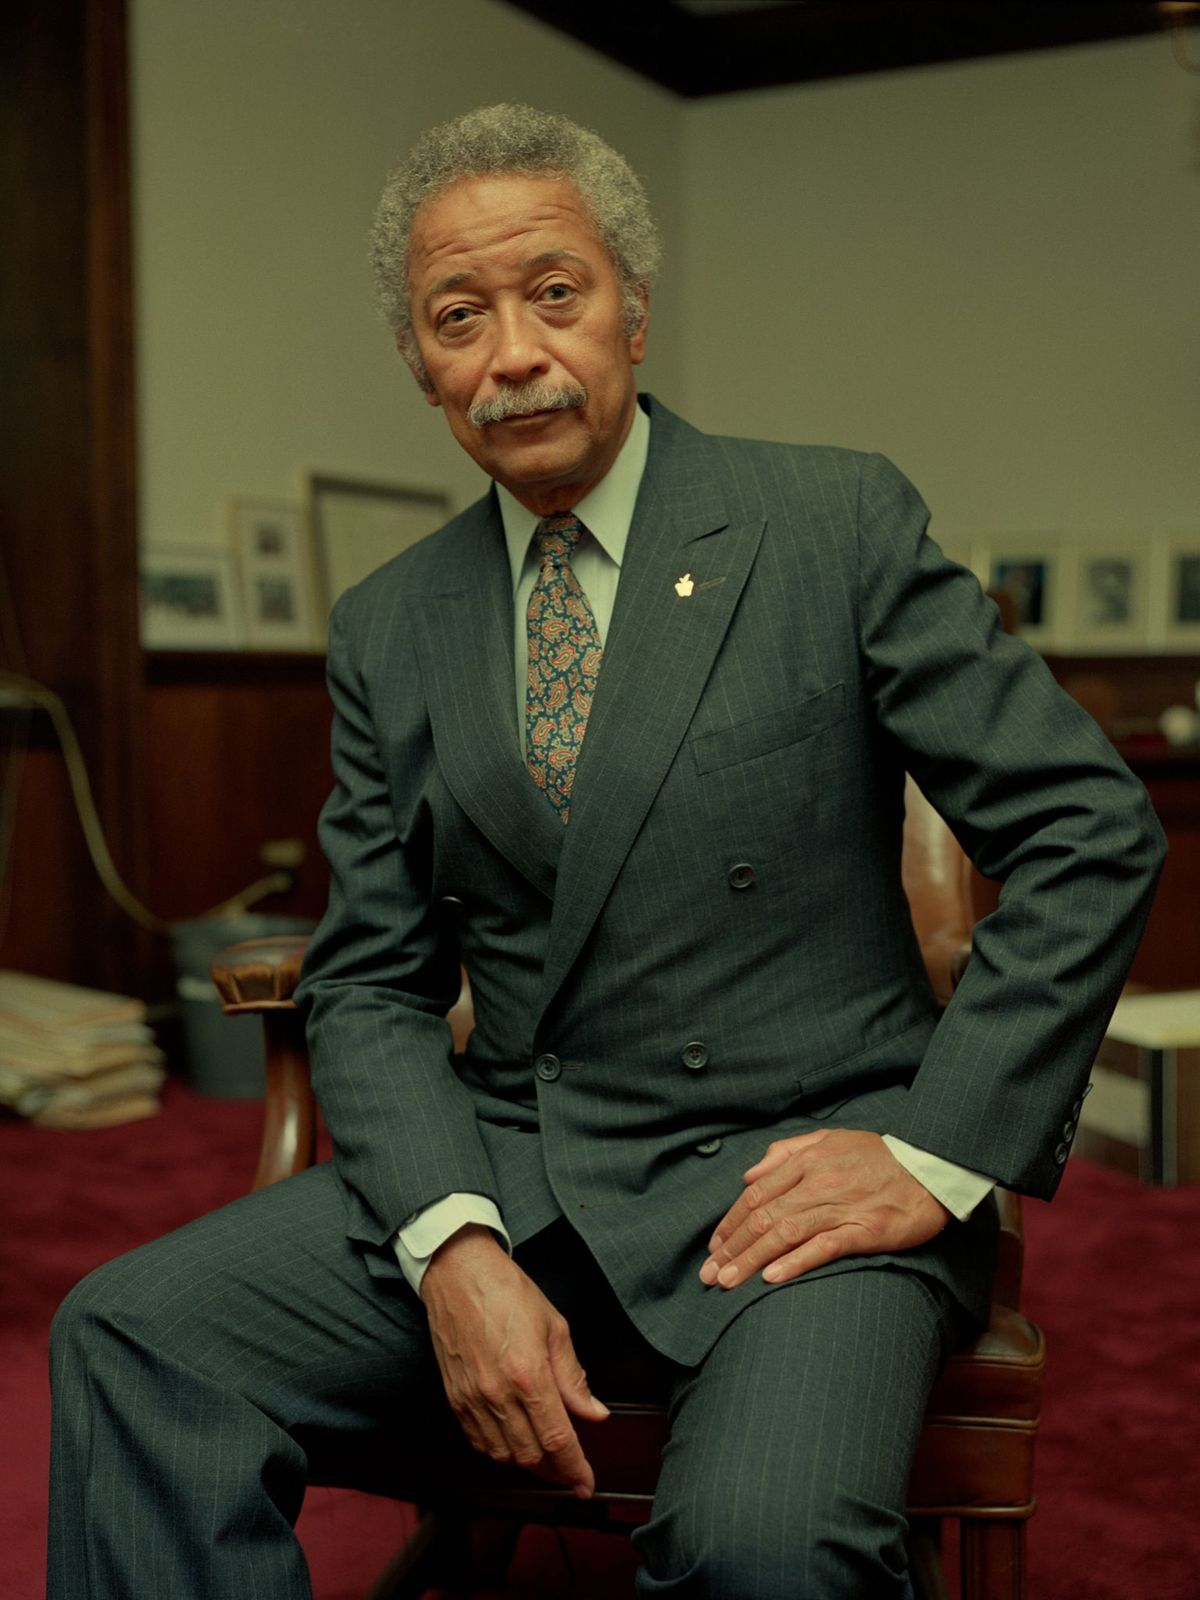 David N. Dinkins poses for a portrait in his office in November 1986 in New York City, New York | Photo: Karjean Levine/Getty Images